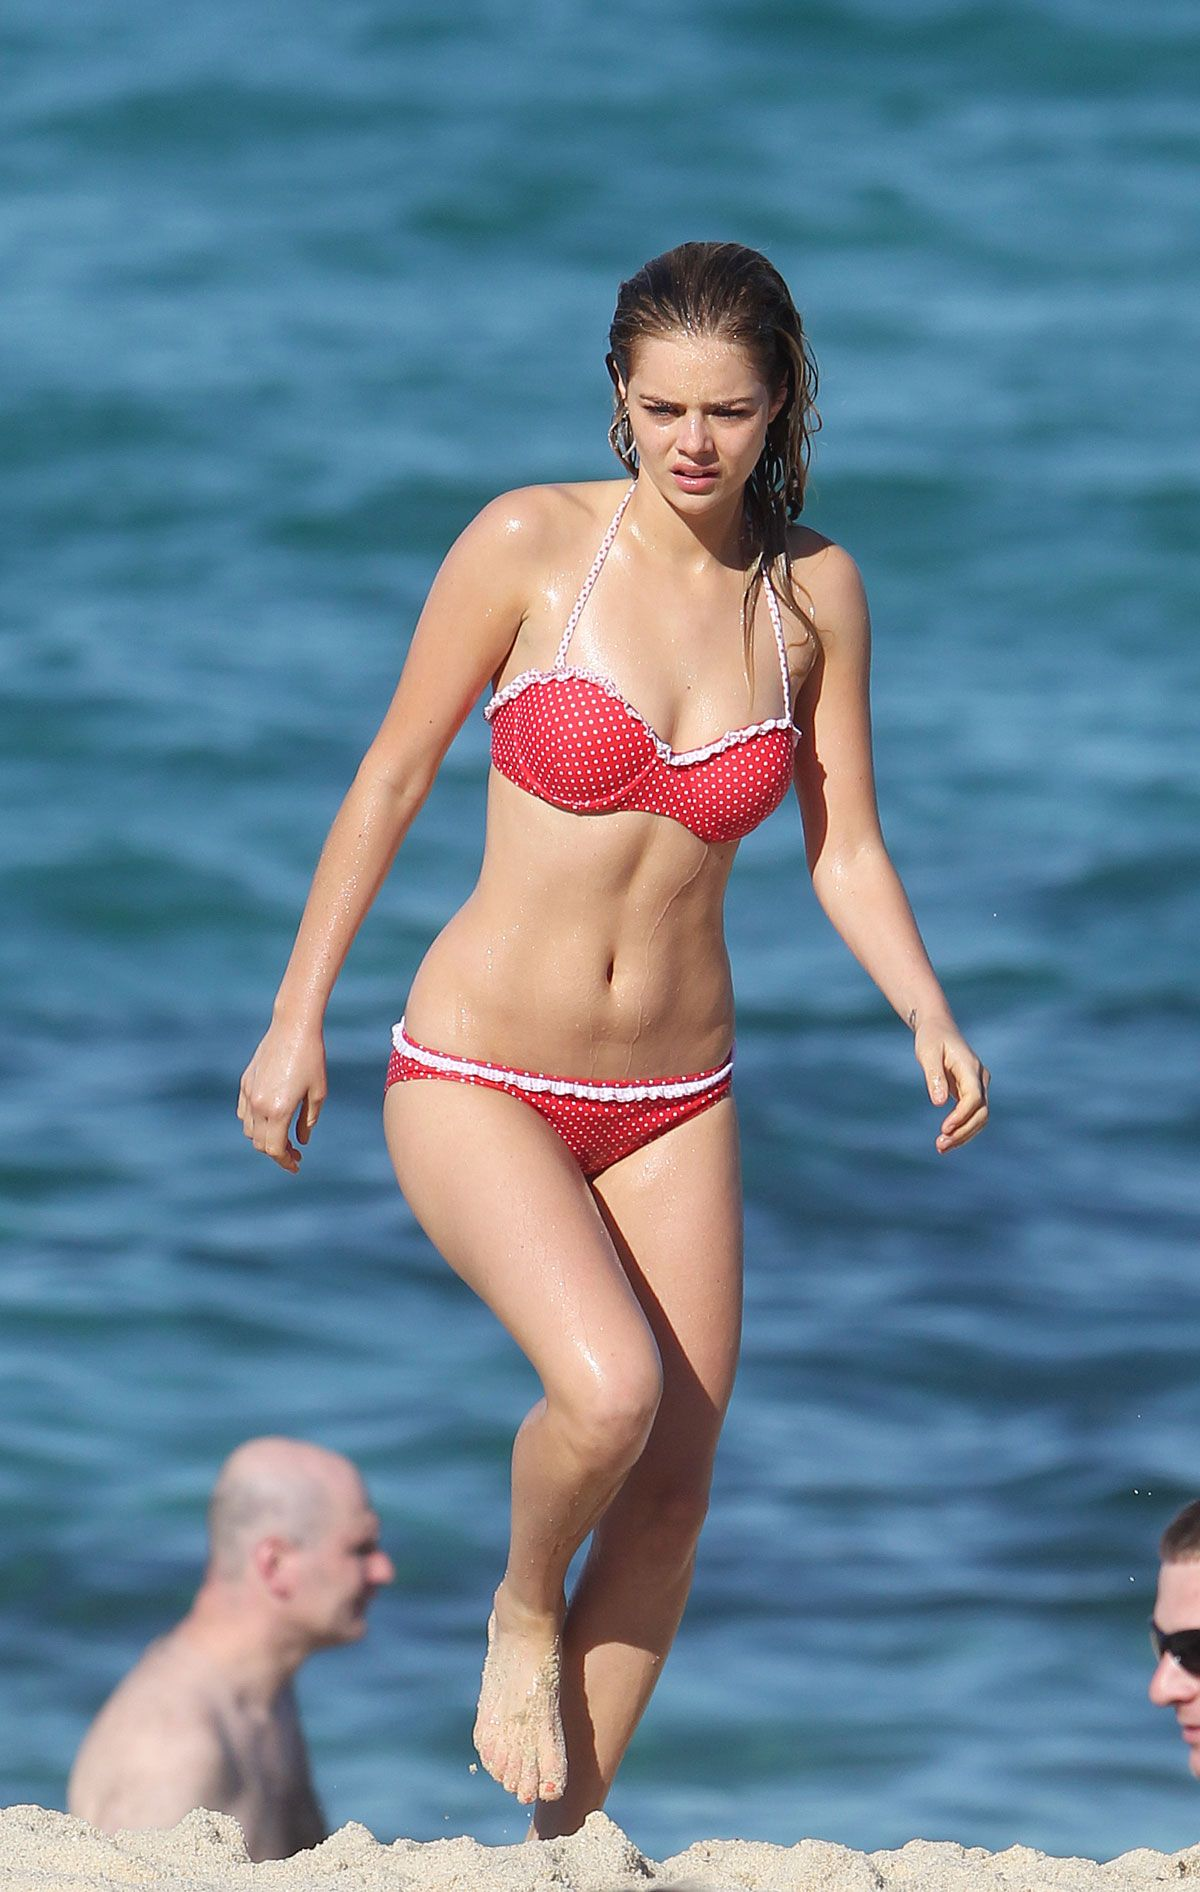 pictures Samara weaving leaked 27 Photos